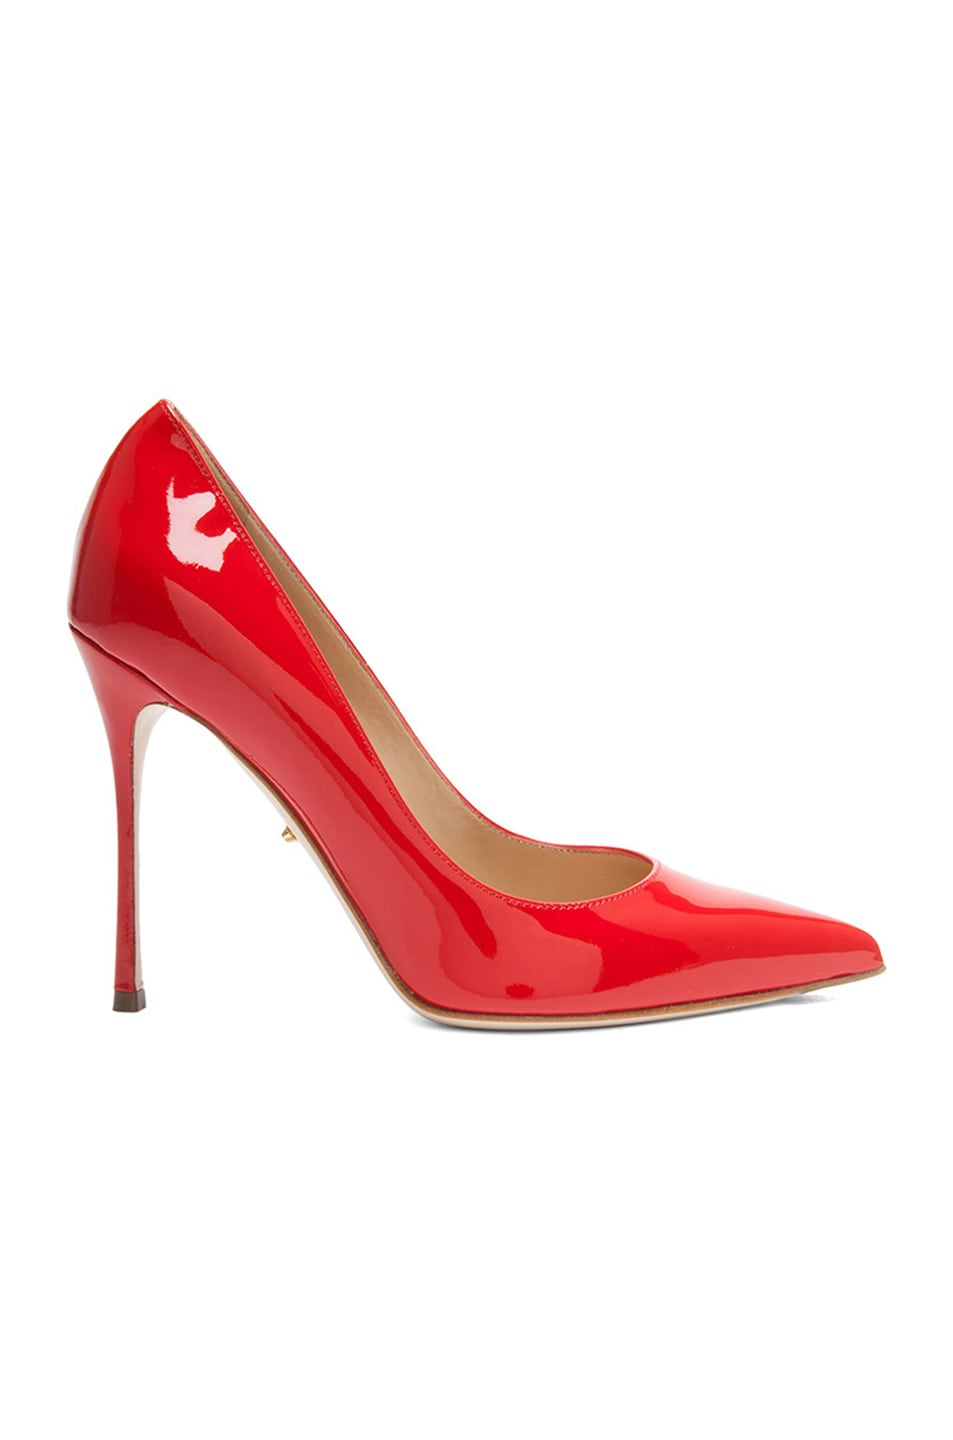 Image 1 of Sergio Rossi Godiva Patent Leather Pumps in Rosso Flamenco